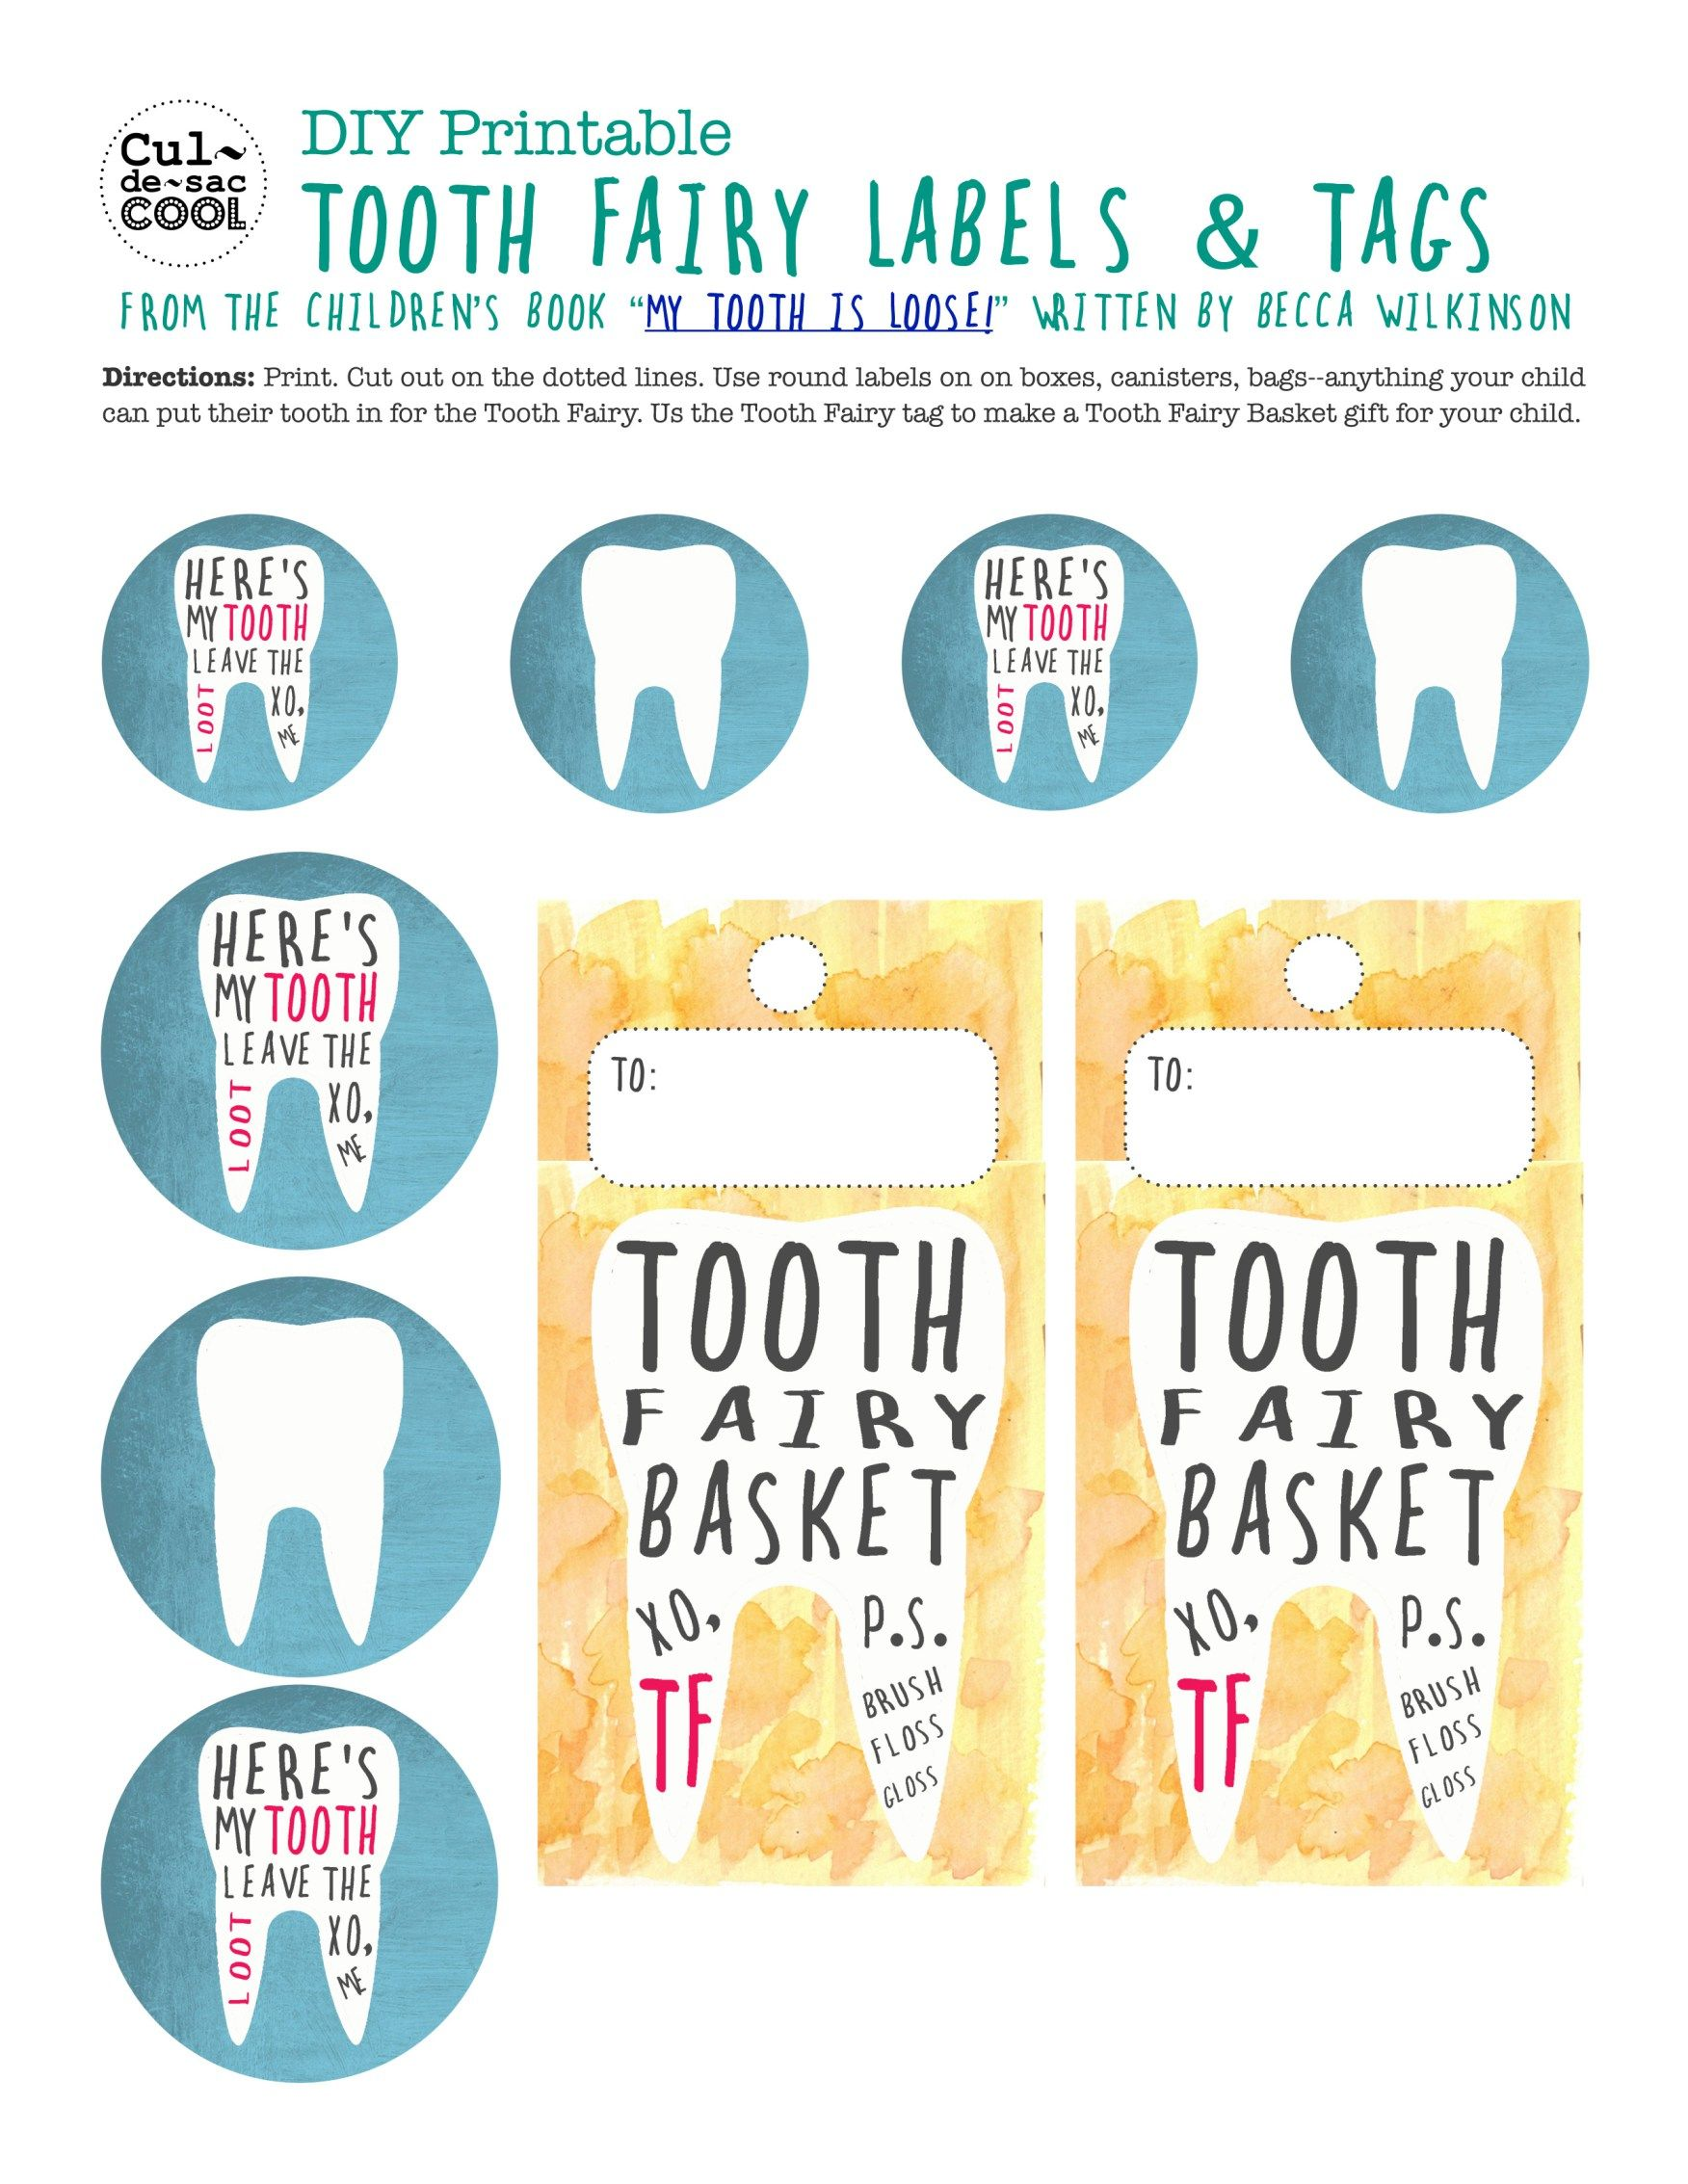 Diy Printable Tooth Fairy Labels Amp Tags From The Children